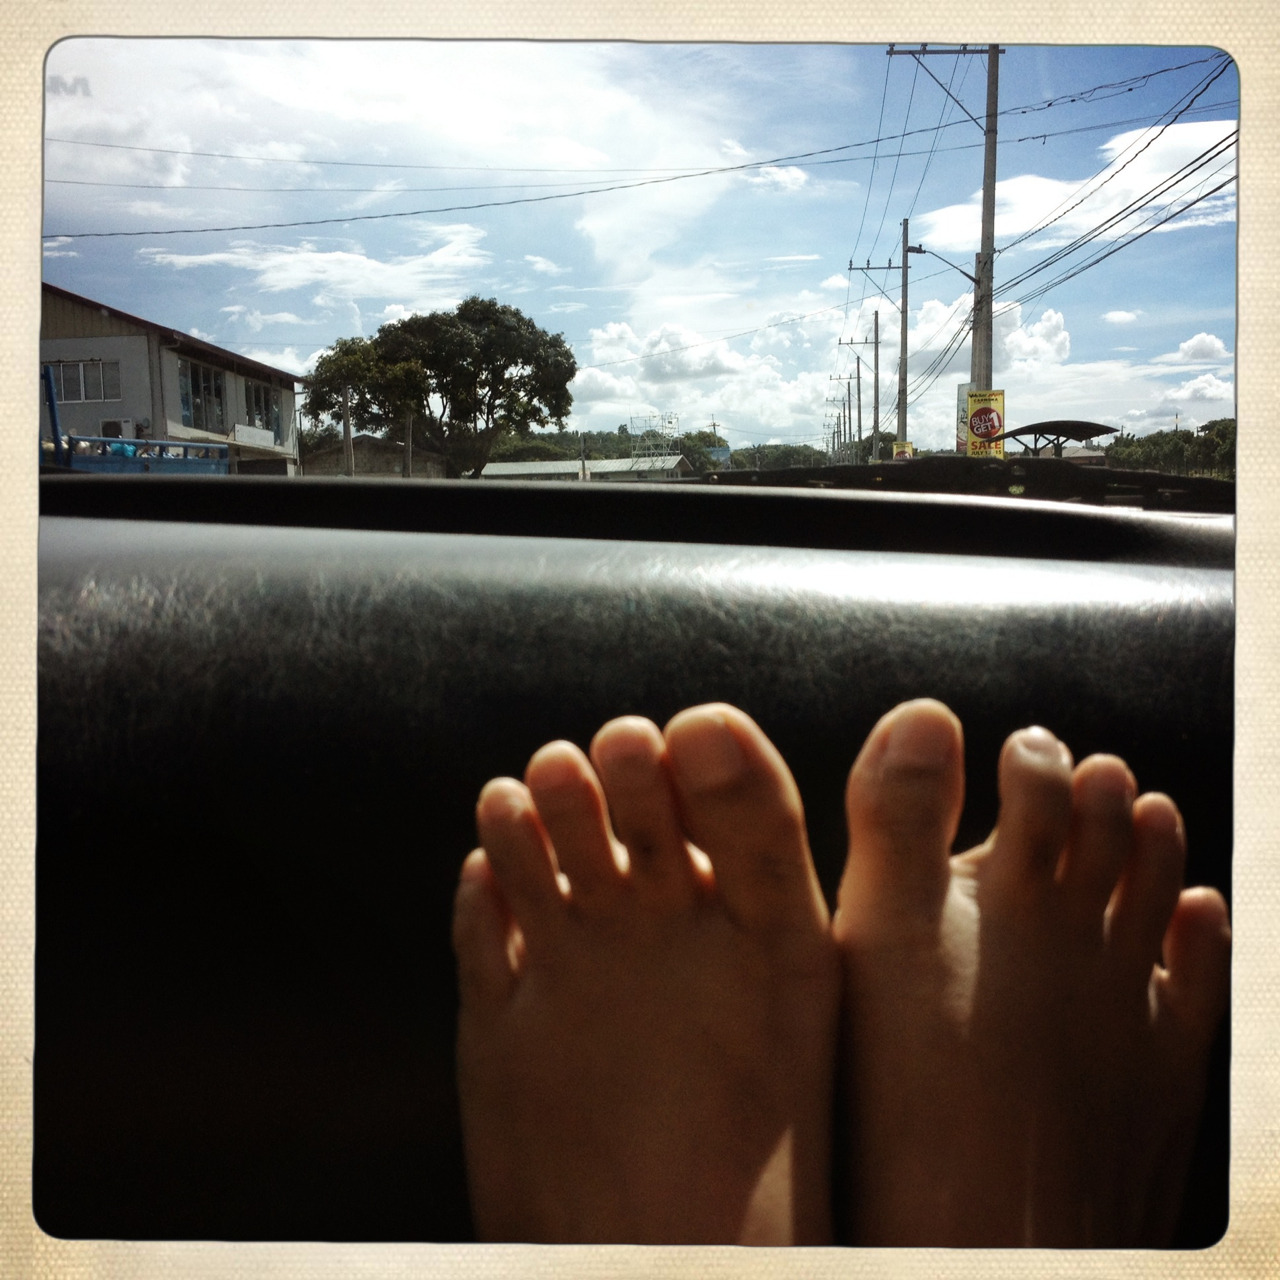 Sunday driving.